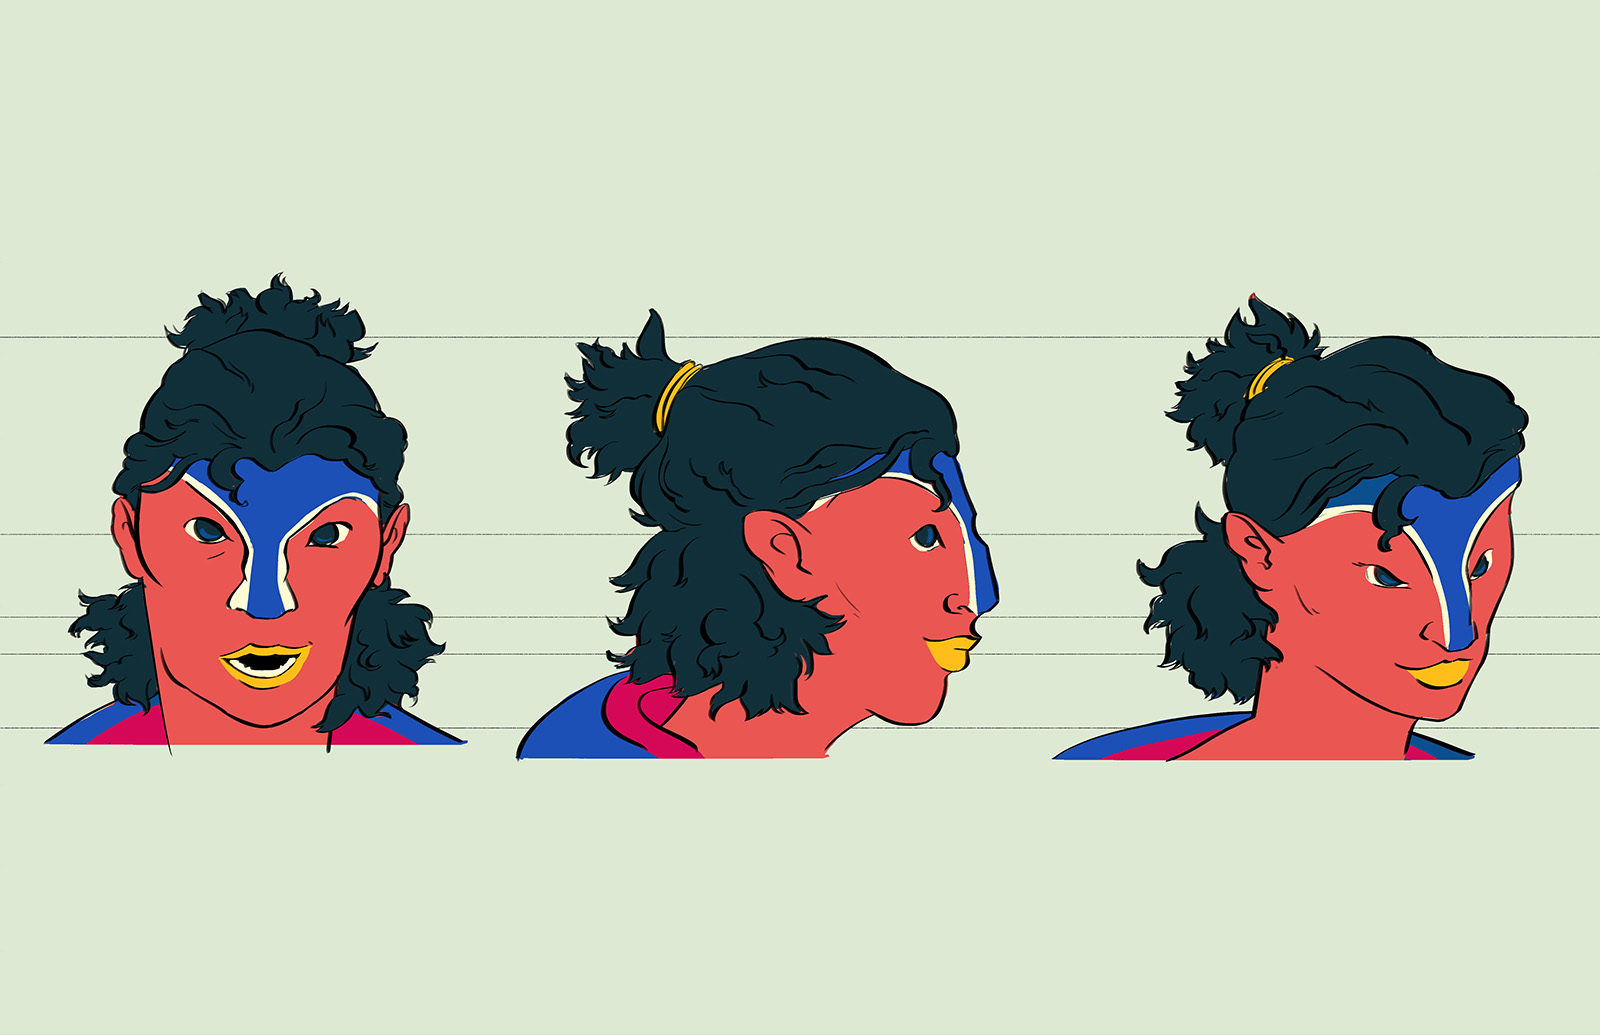 Marraquin character design. The character's face in profile, facing forward, and in 3/4 view. Her hair is pulled back and her forehead and nosebridge are naturally colored blue.